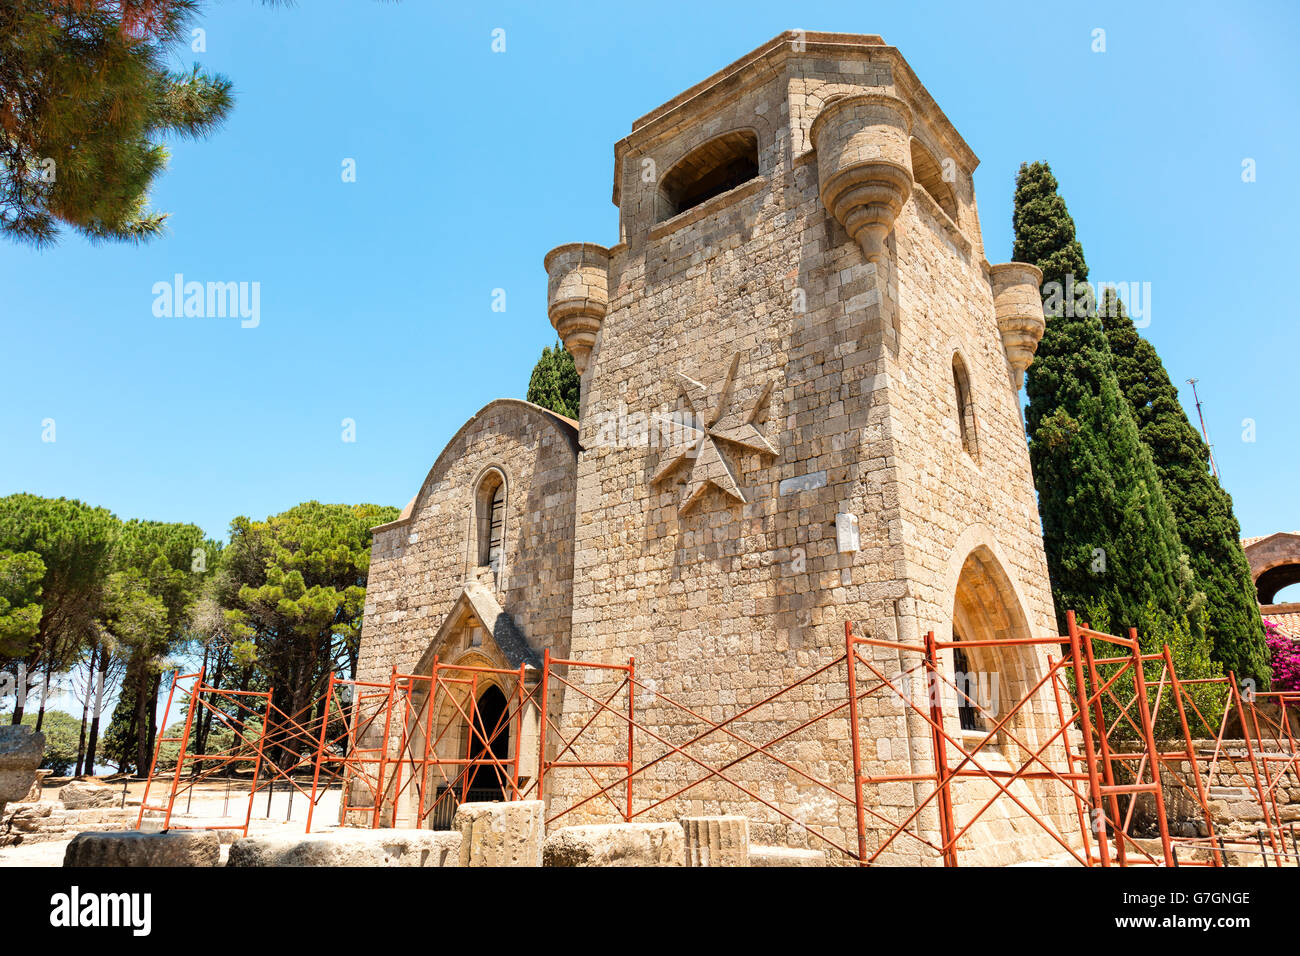 The Monastery of Filerimos was built in the 15th century by the Knights of Saint John on the island of Rhodes. - Stock Image